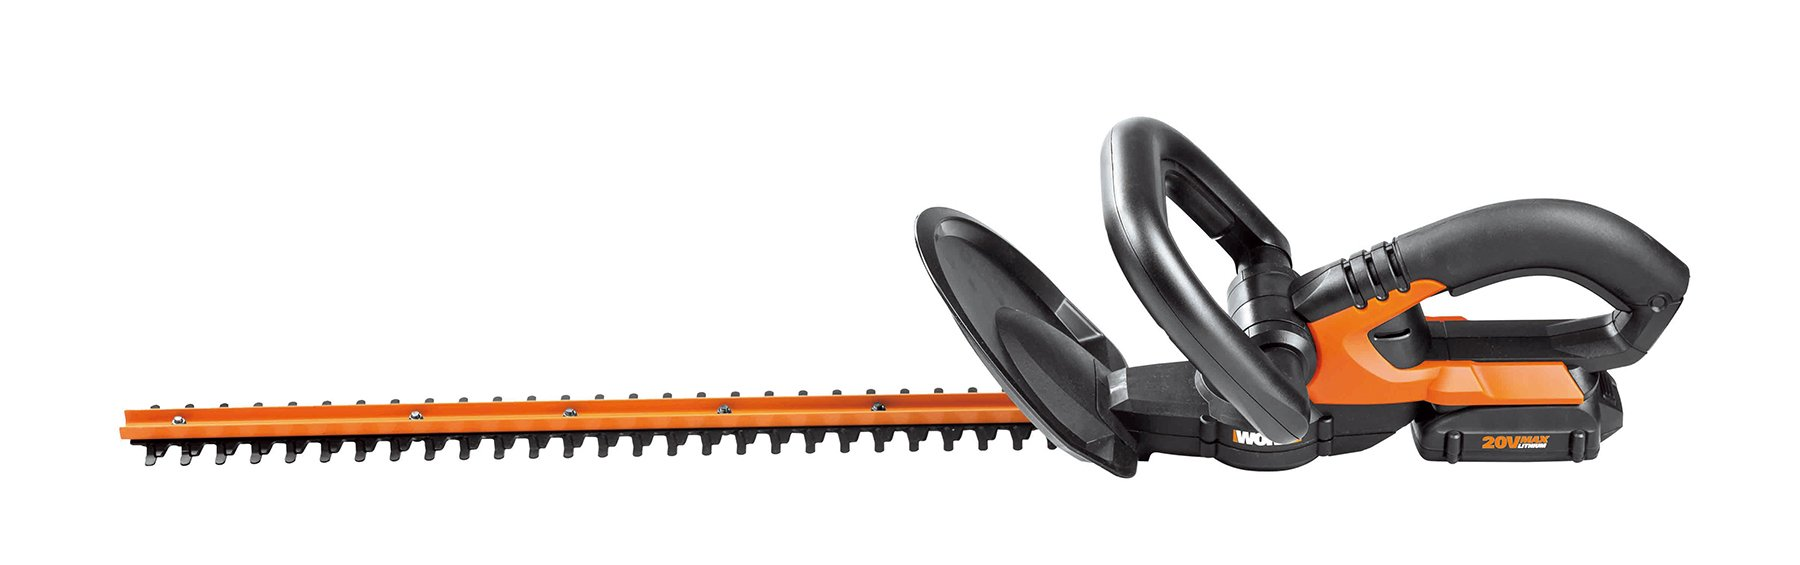 Worx WG255.1 20V PowerShare 20'' Cordless Electric Hedge Trimmer